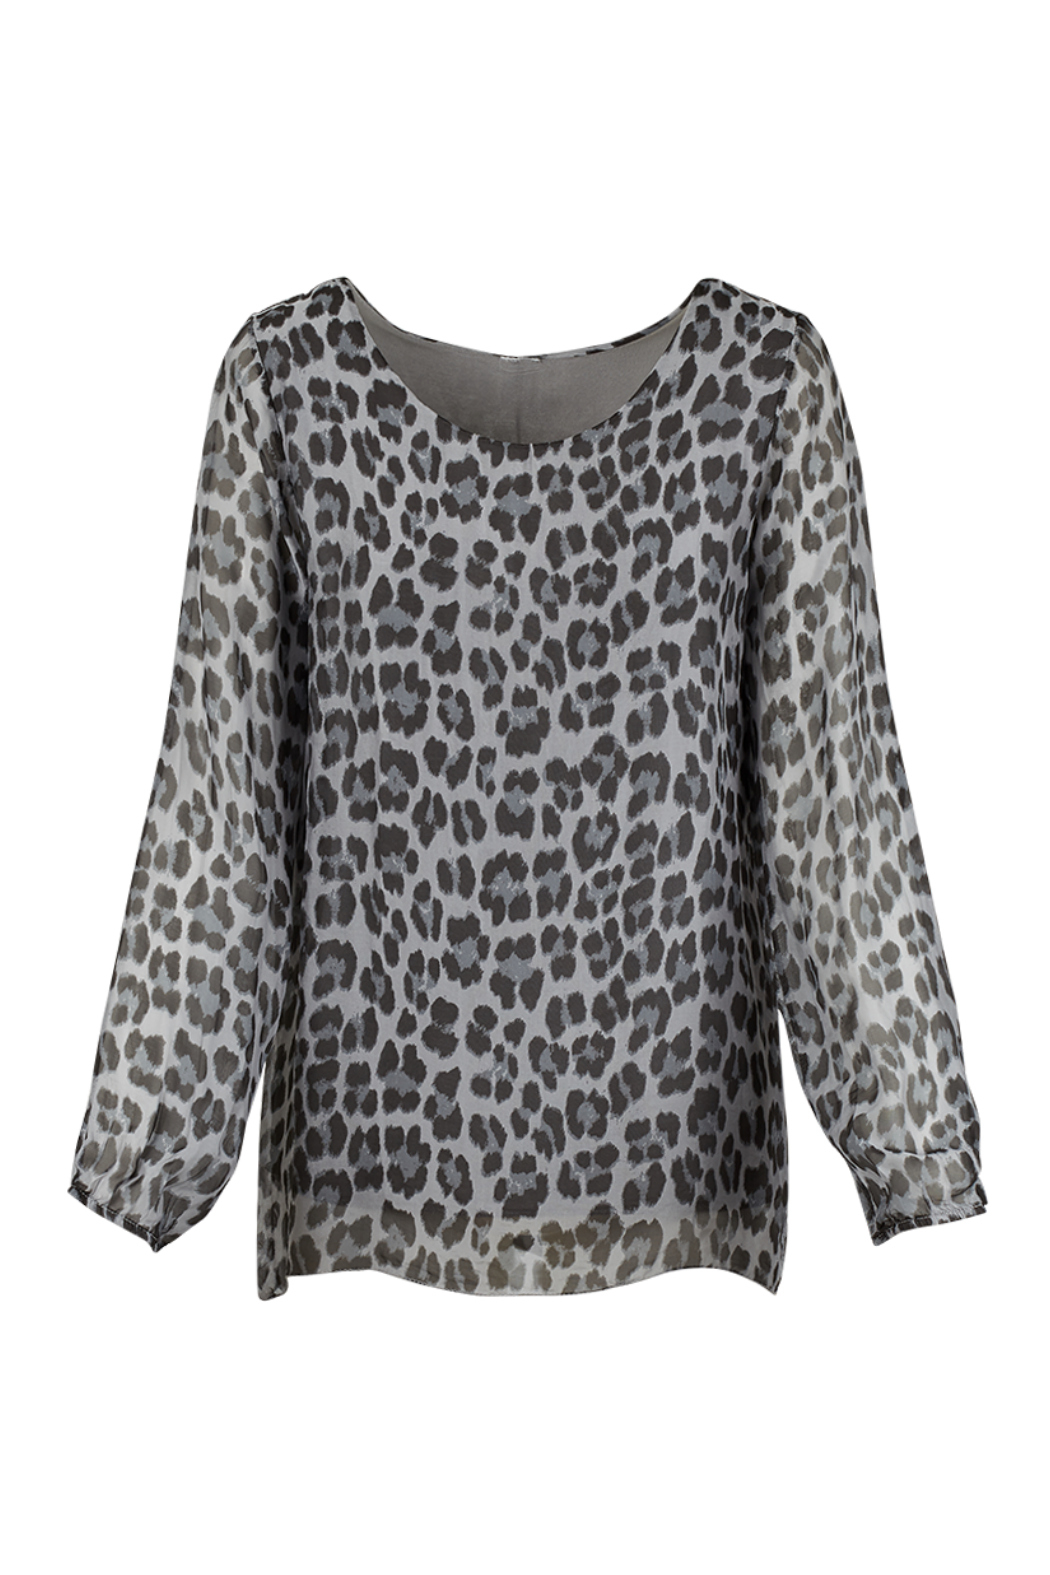 M made in Italy Animal Print Flowy Blouse - Main Image